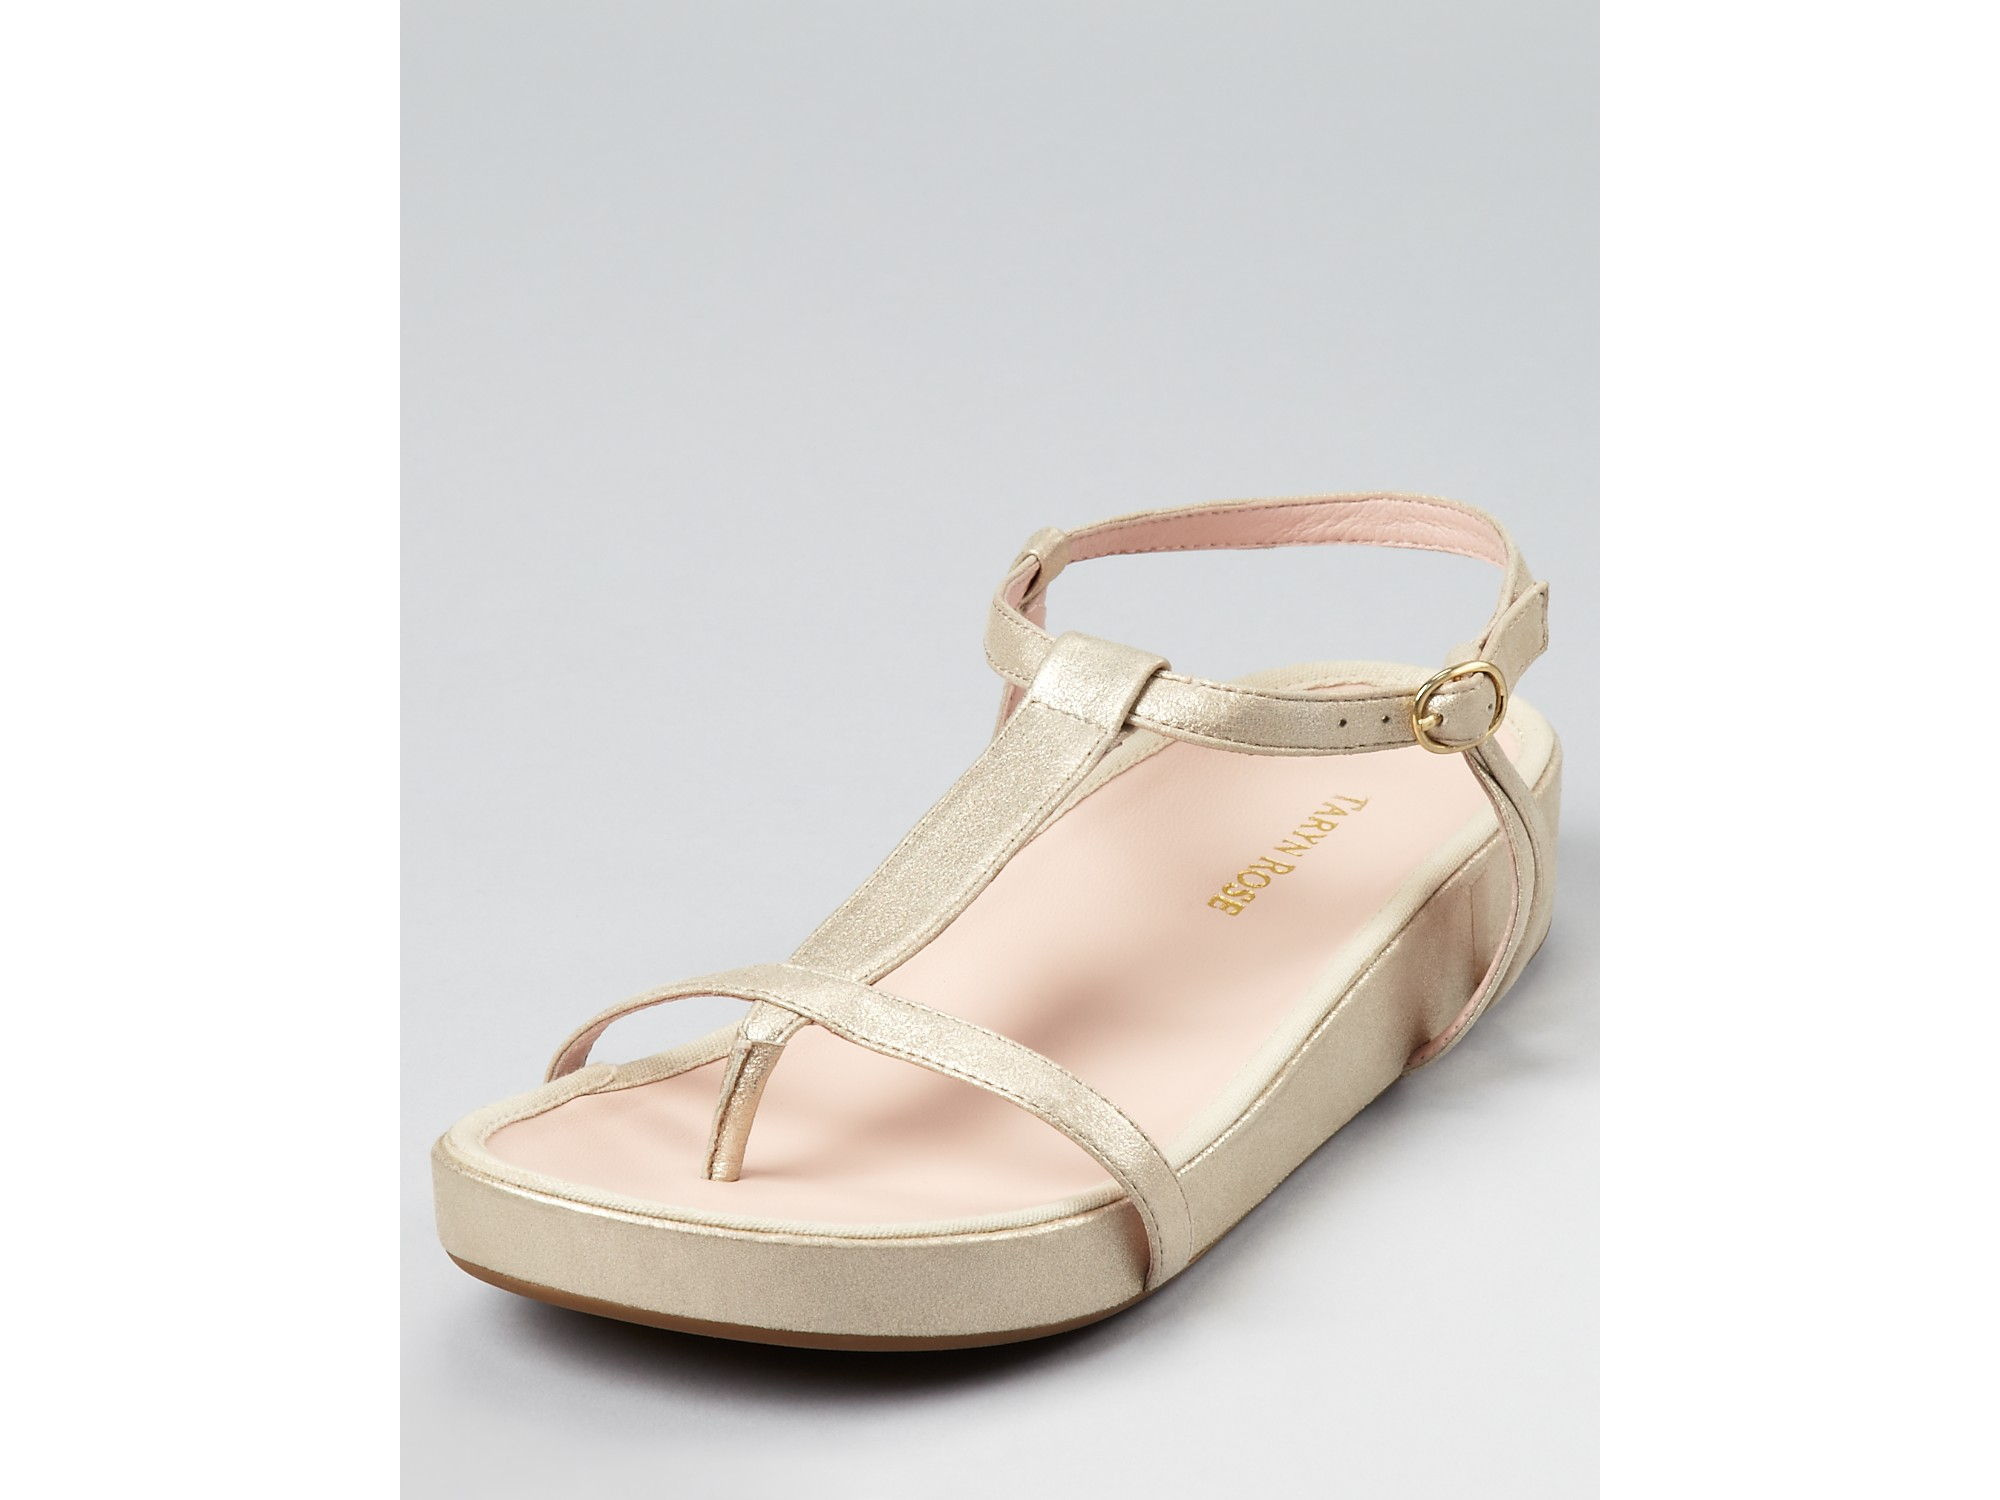 Taryn Rose Sandals Amor Thong Sandal In Black Soft Gold